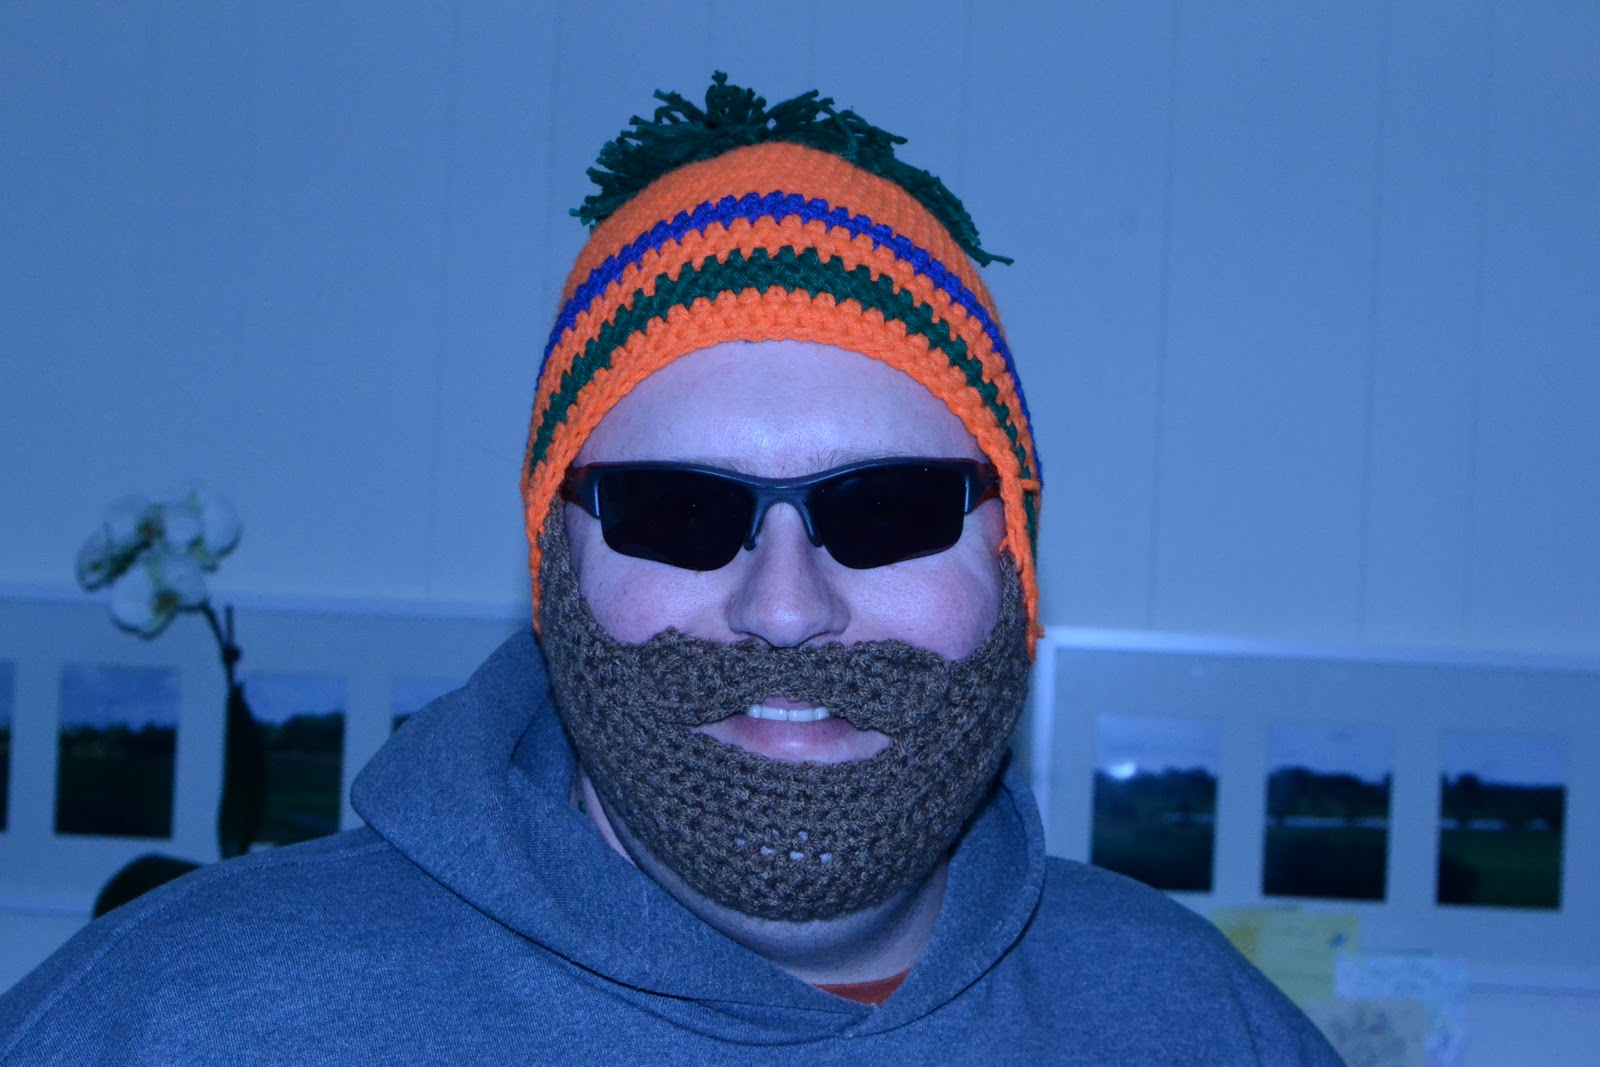 Pattern Crochet Beard Hat : Craft Disasters and other Atrocities: Das Beardhat - Revised